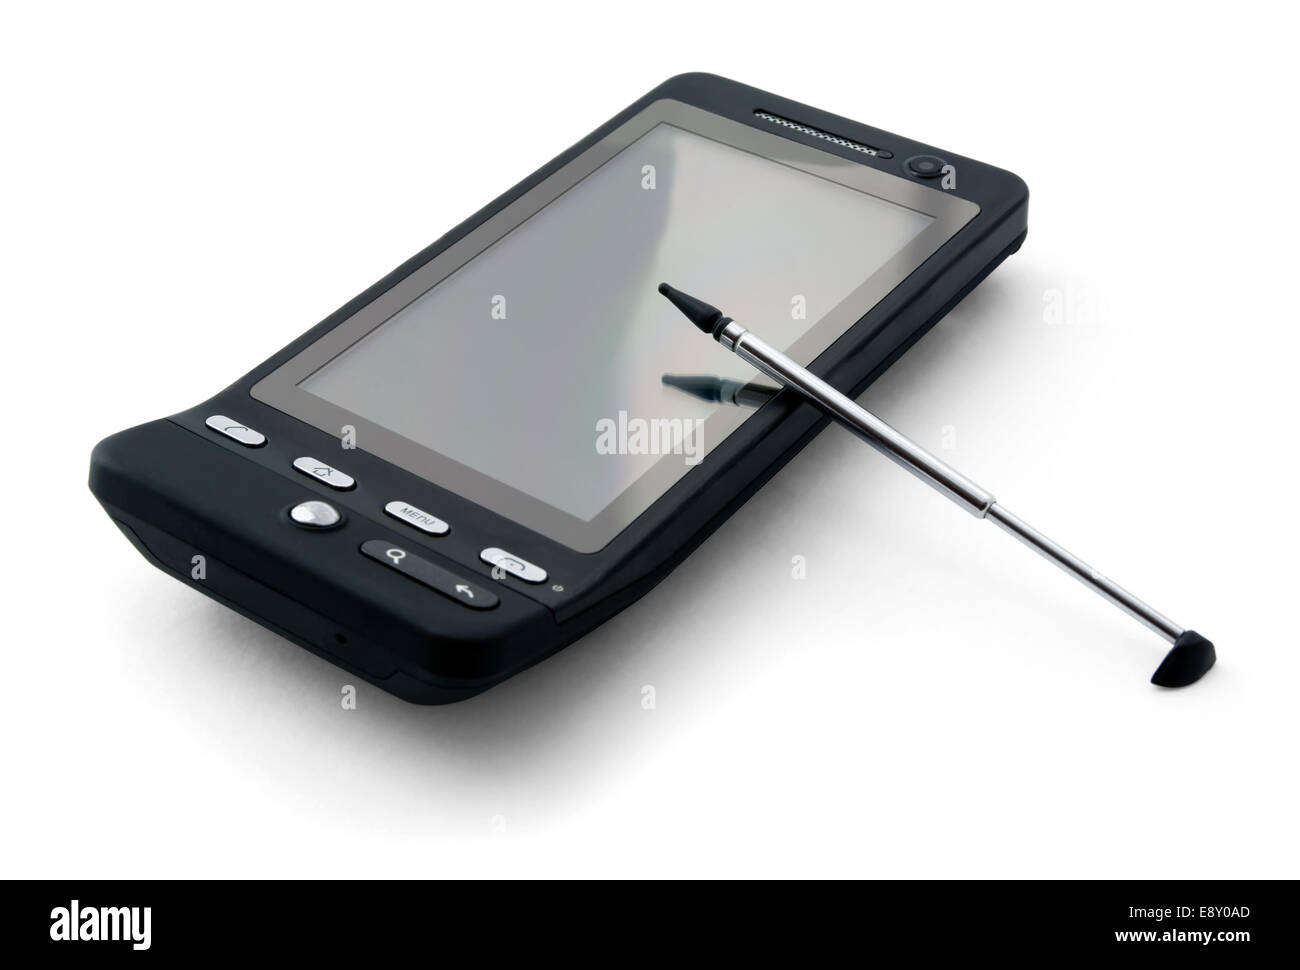 PDA and stylus - Stock Image